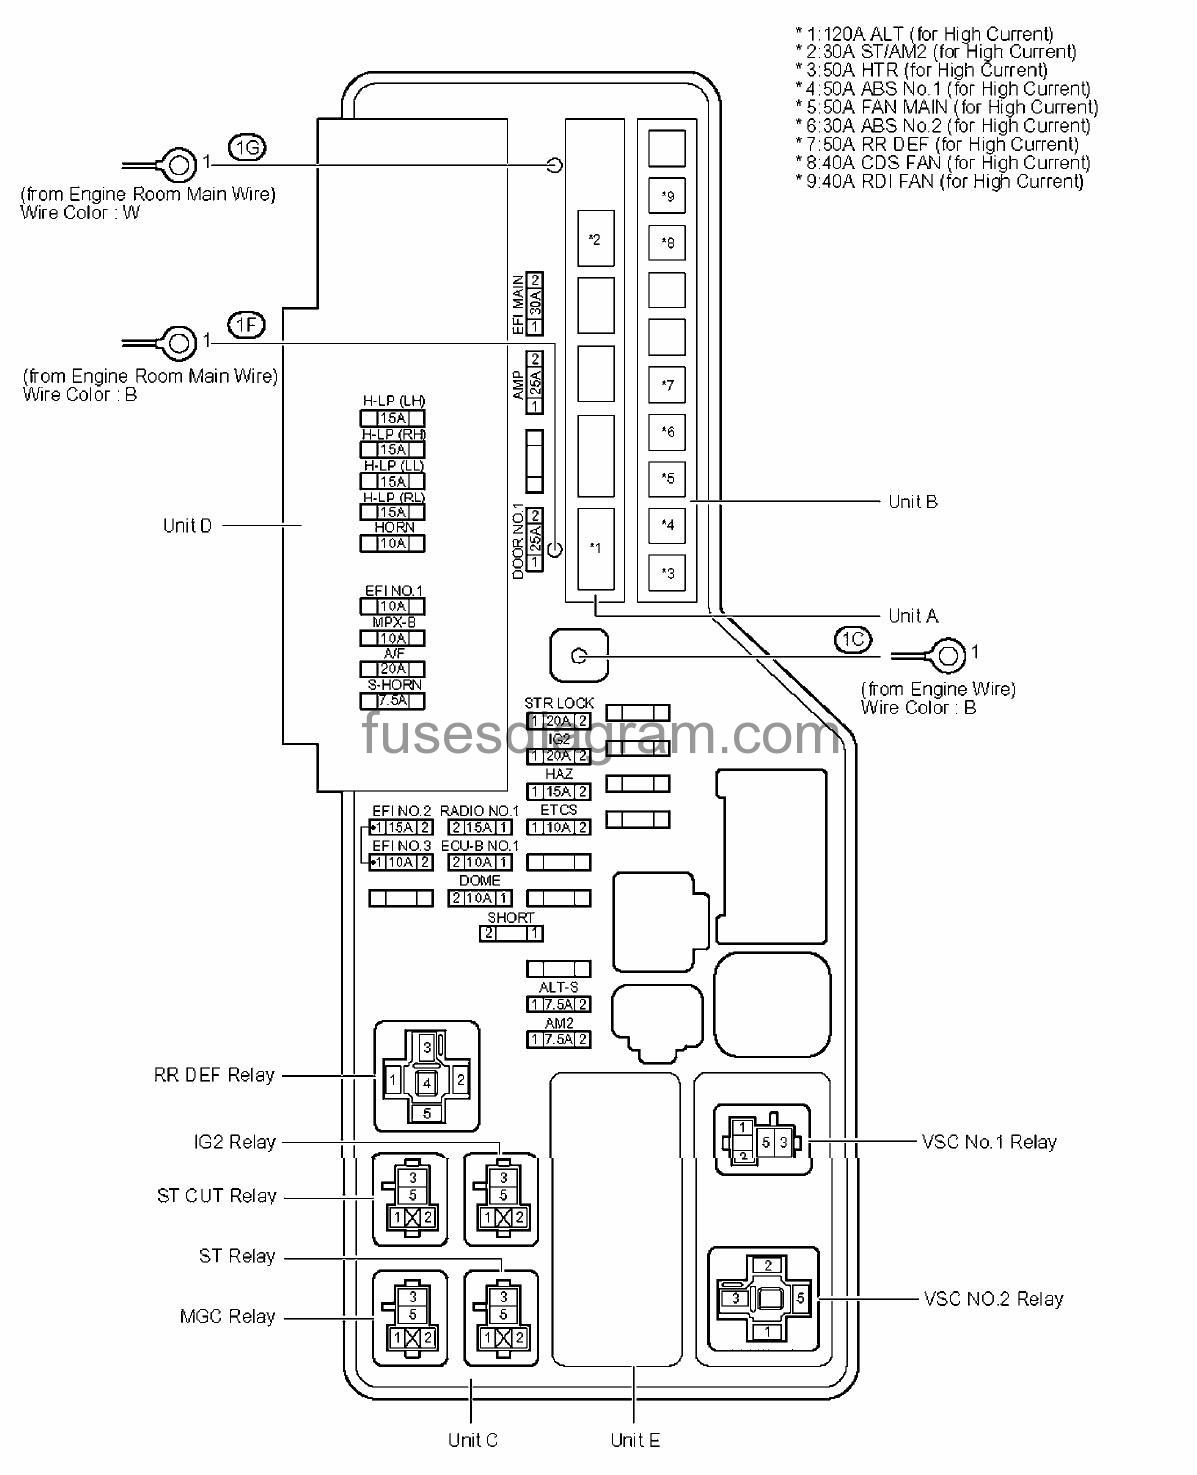 power seat wiring diagram charger fuse box toyota camry xv40